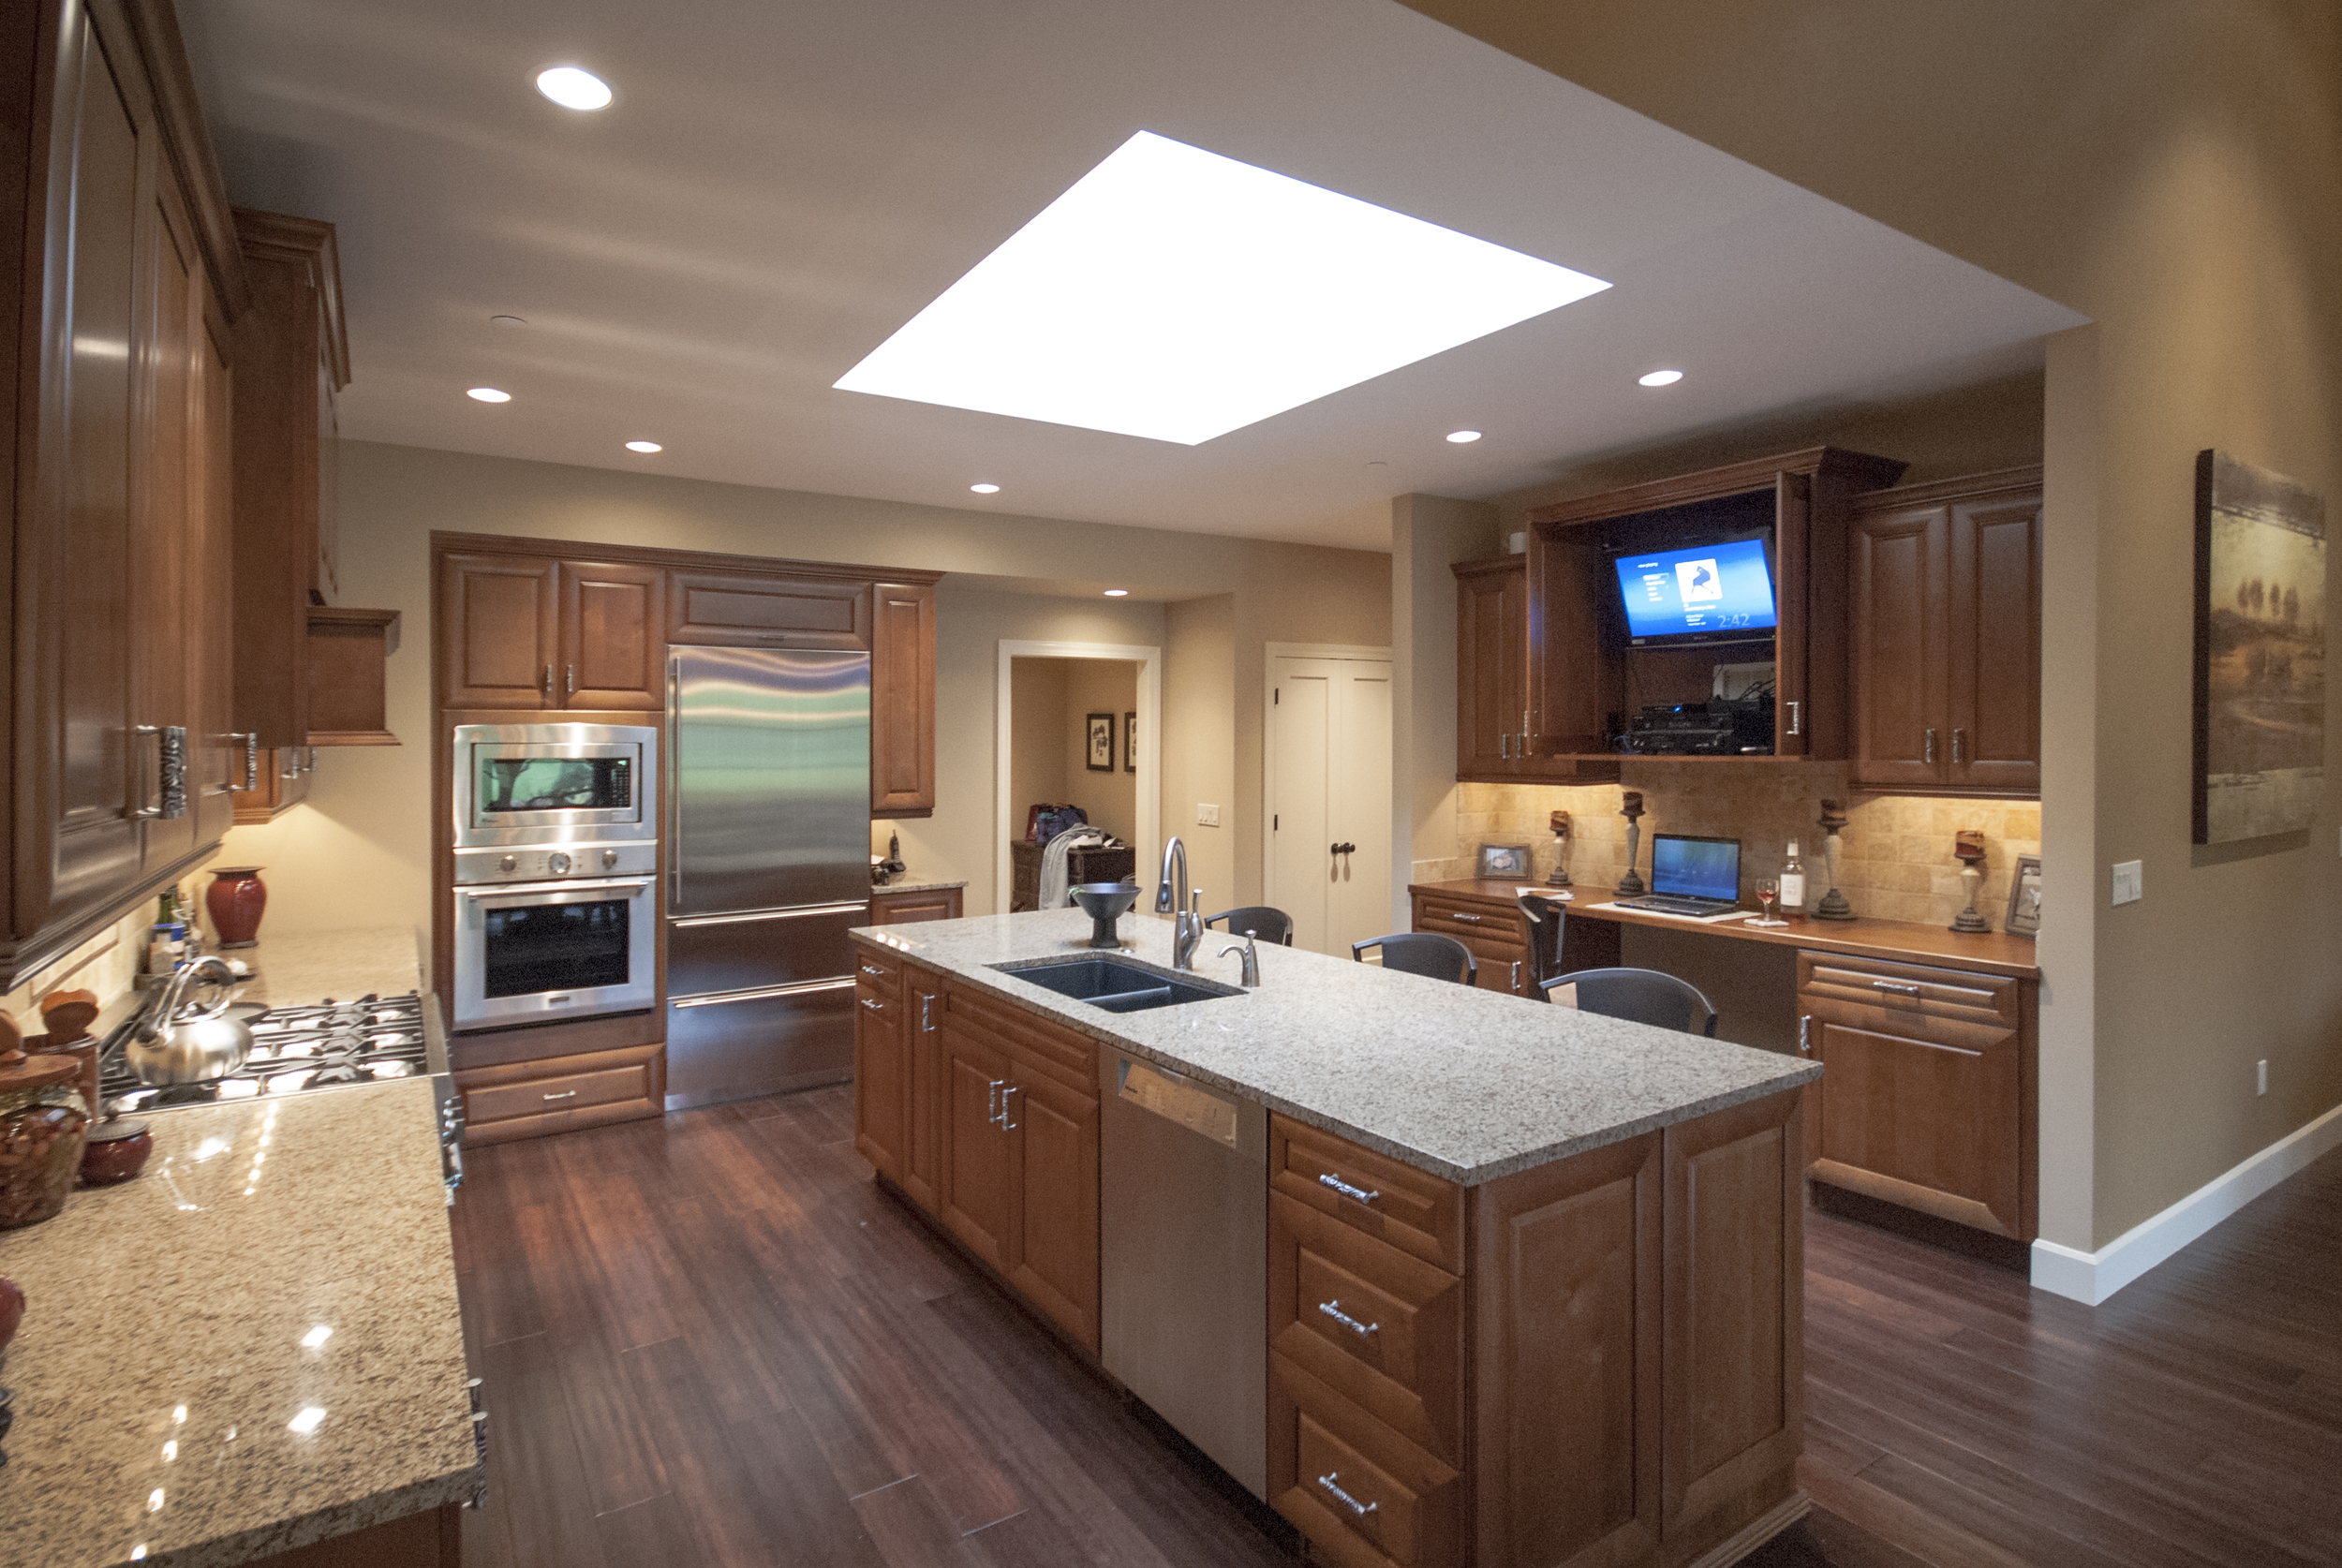 The center cabinet houses a TV and media center.  A cool feature is the slide away cabinet doors, which tuck away in the cabinet.